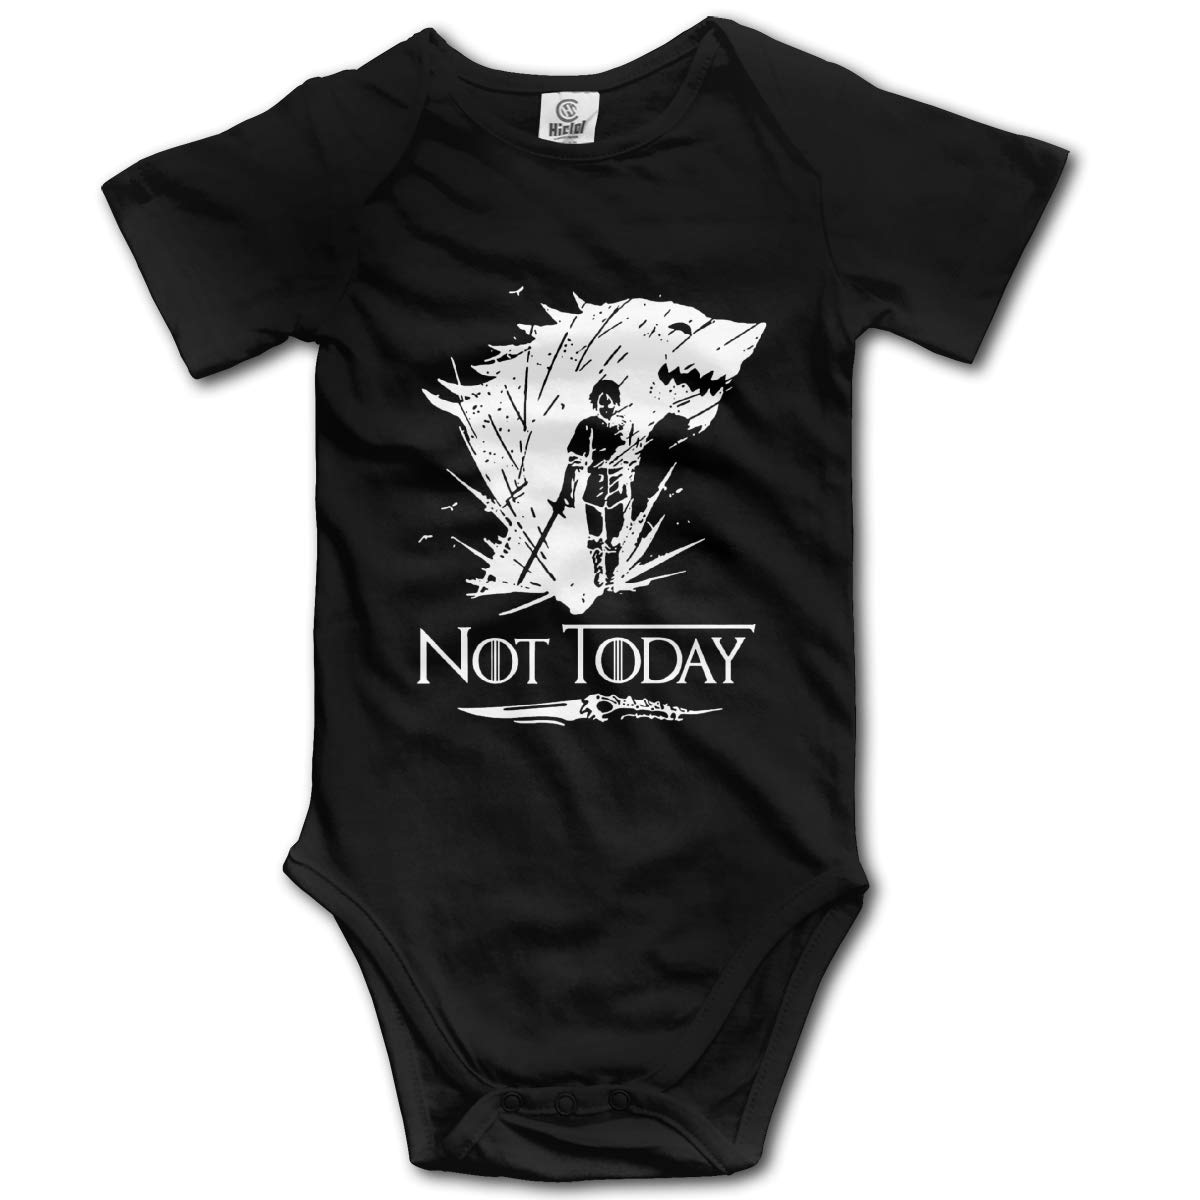 Not-Today-Arya-Stark Unisex Baby Jumpsuit Short Sleeve Onesies Cotton Clothes for 0-24 Months Baby